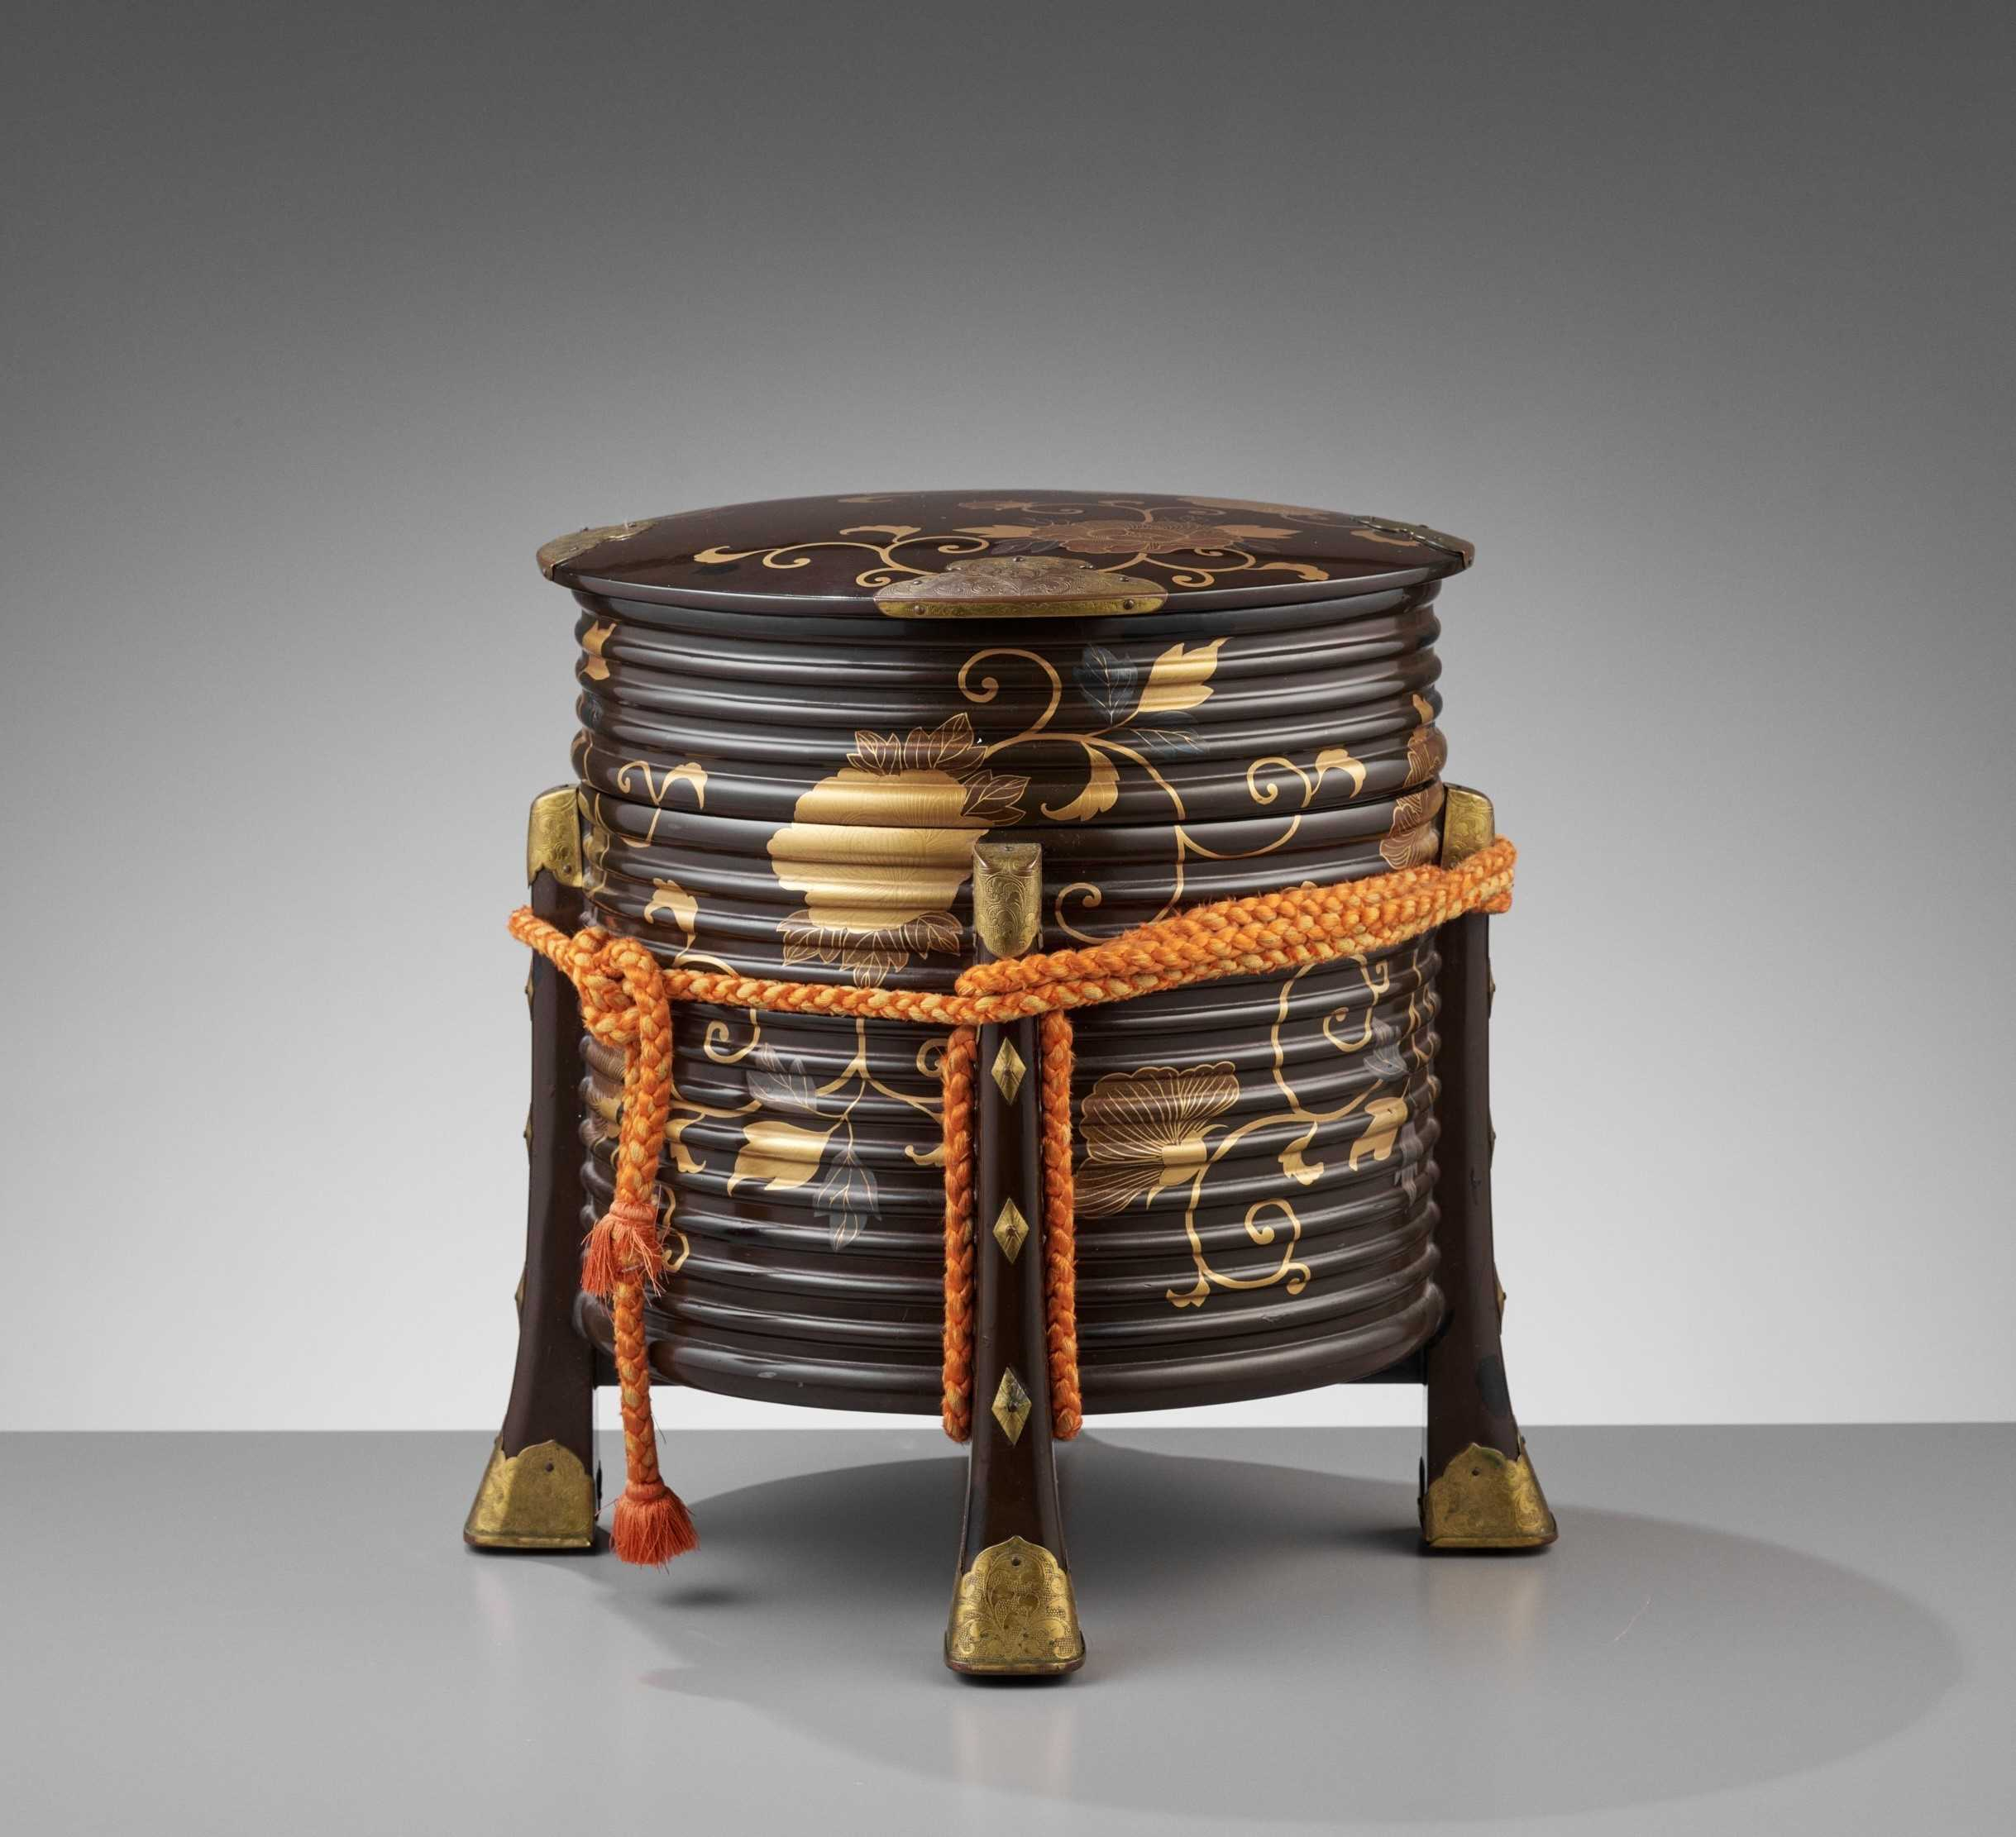 Lot 115 - A GOLD AND BLACK LACQUER HOKAI (COVERED FOOD CONTAINER)